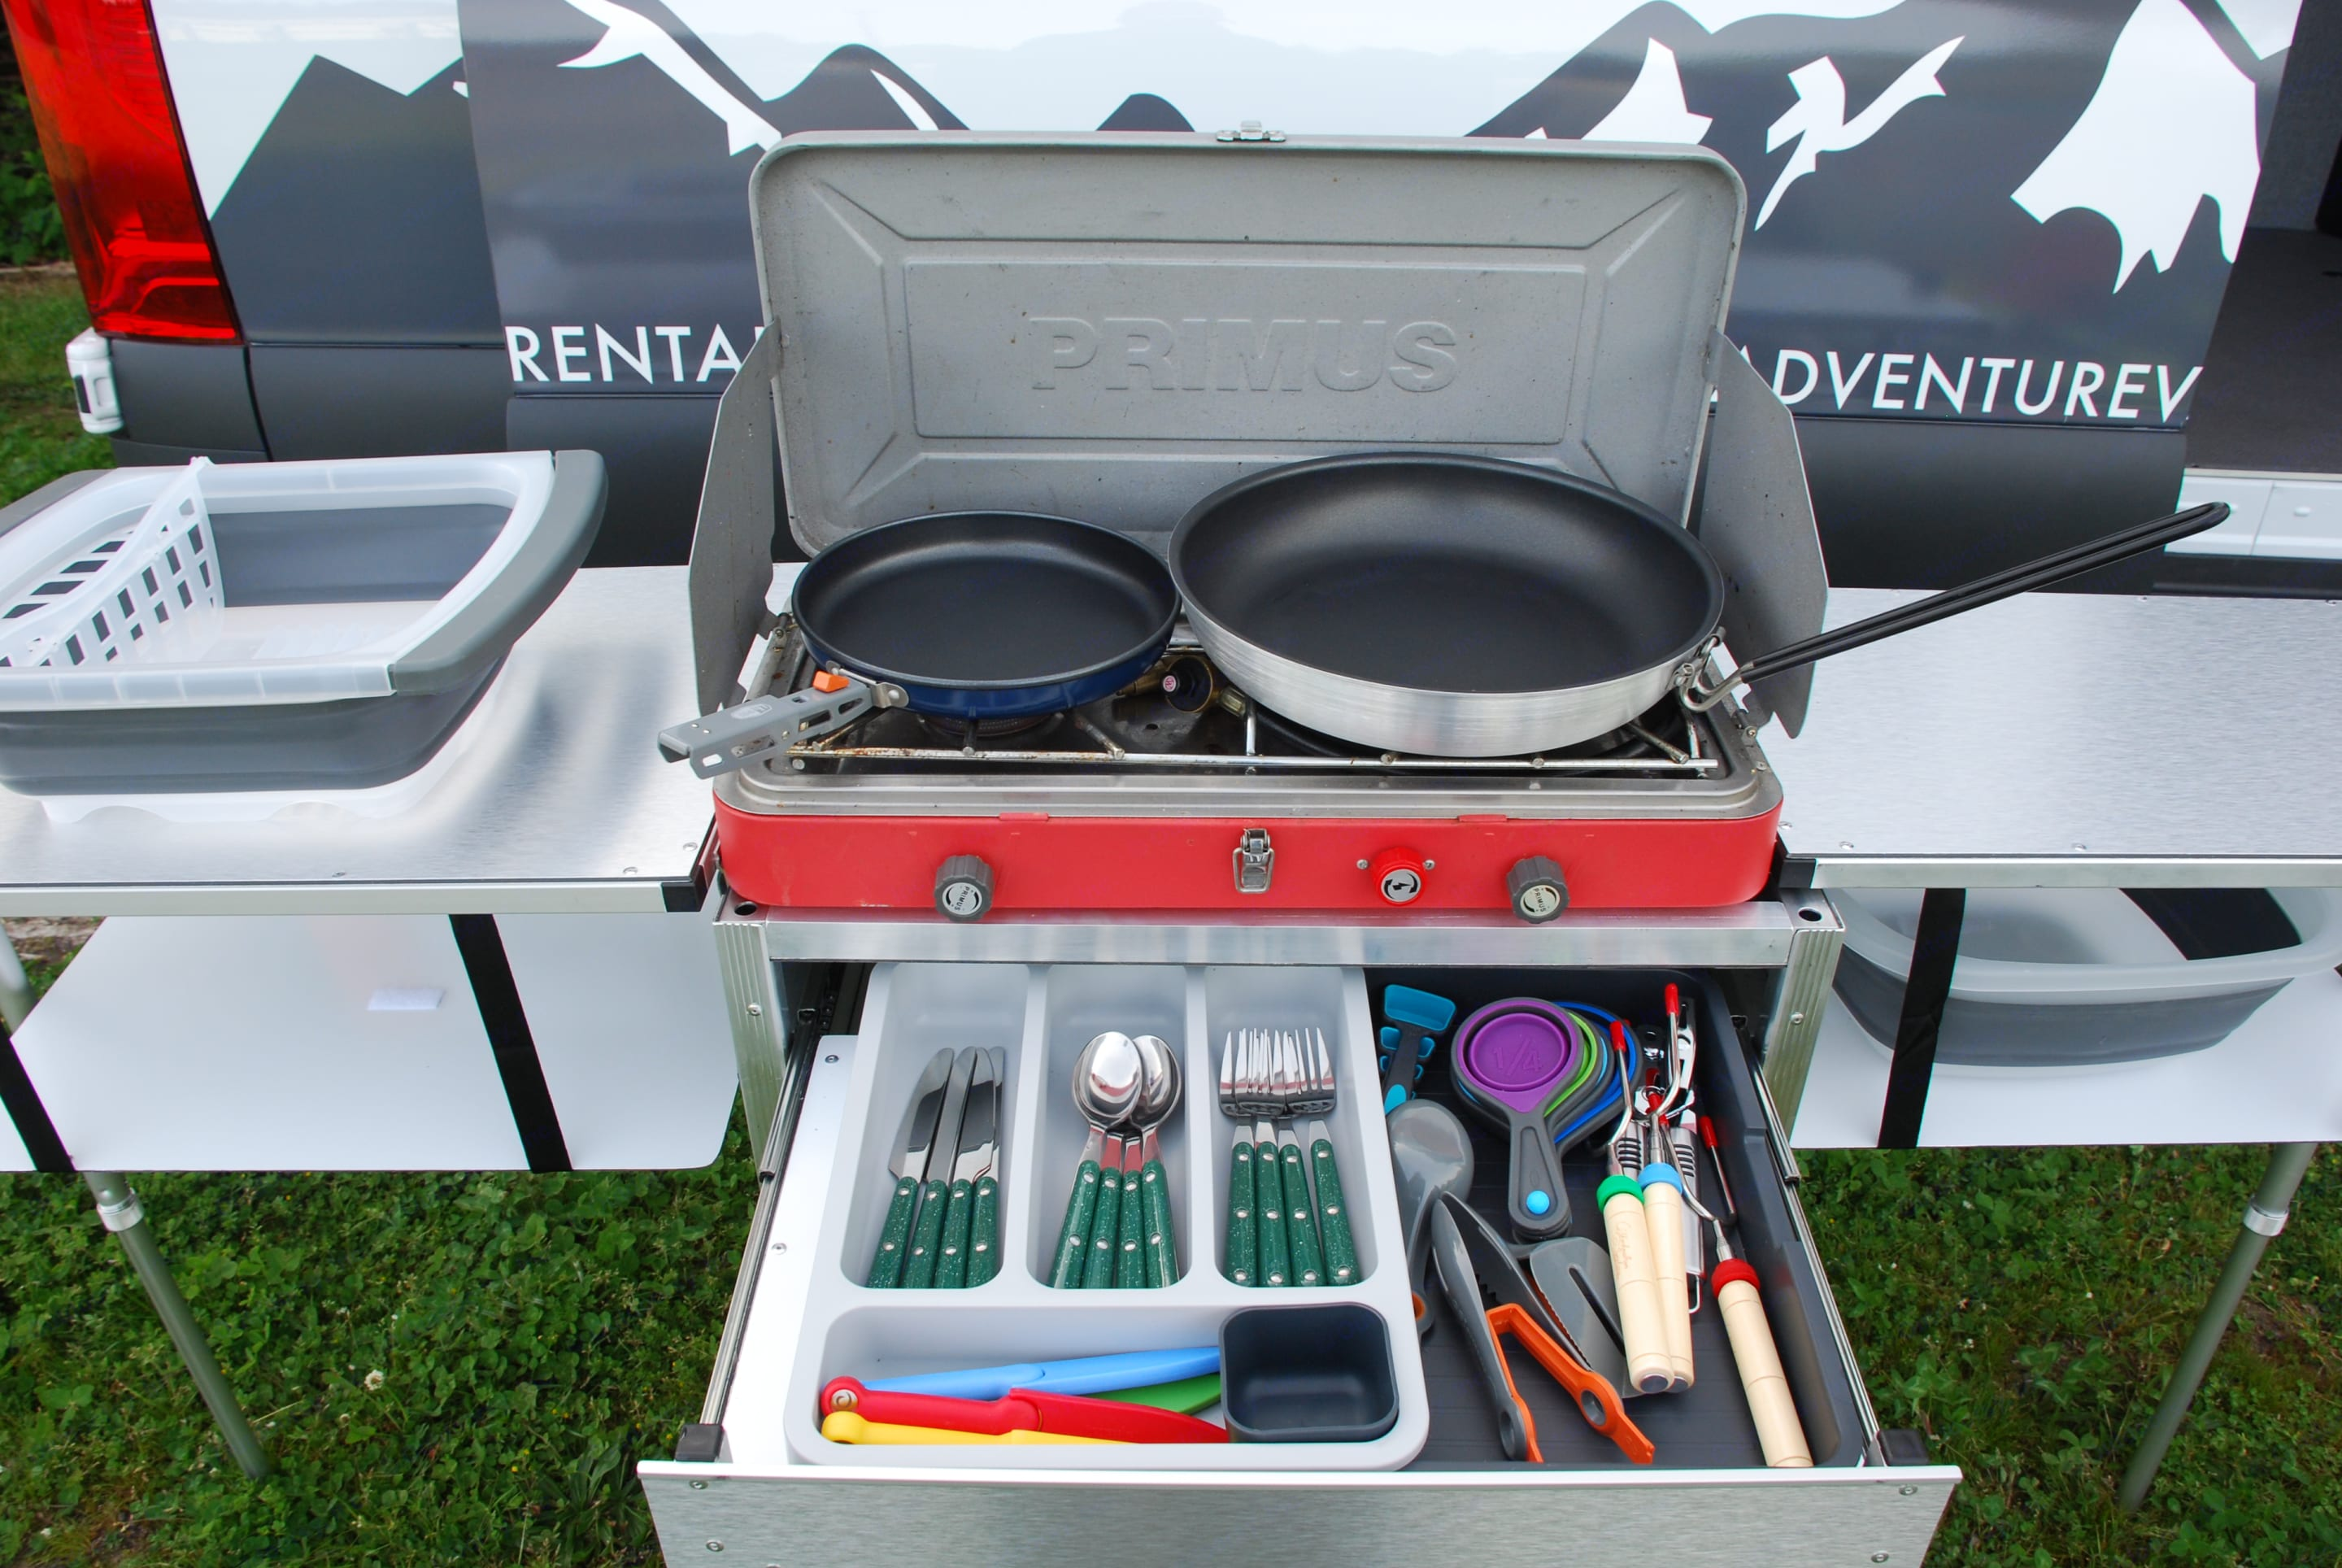 Included Camp kitchen and utensils. Mercedes-Benz Sprinter 2019